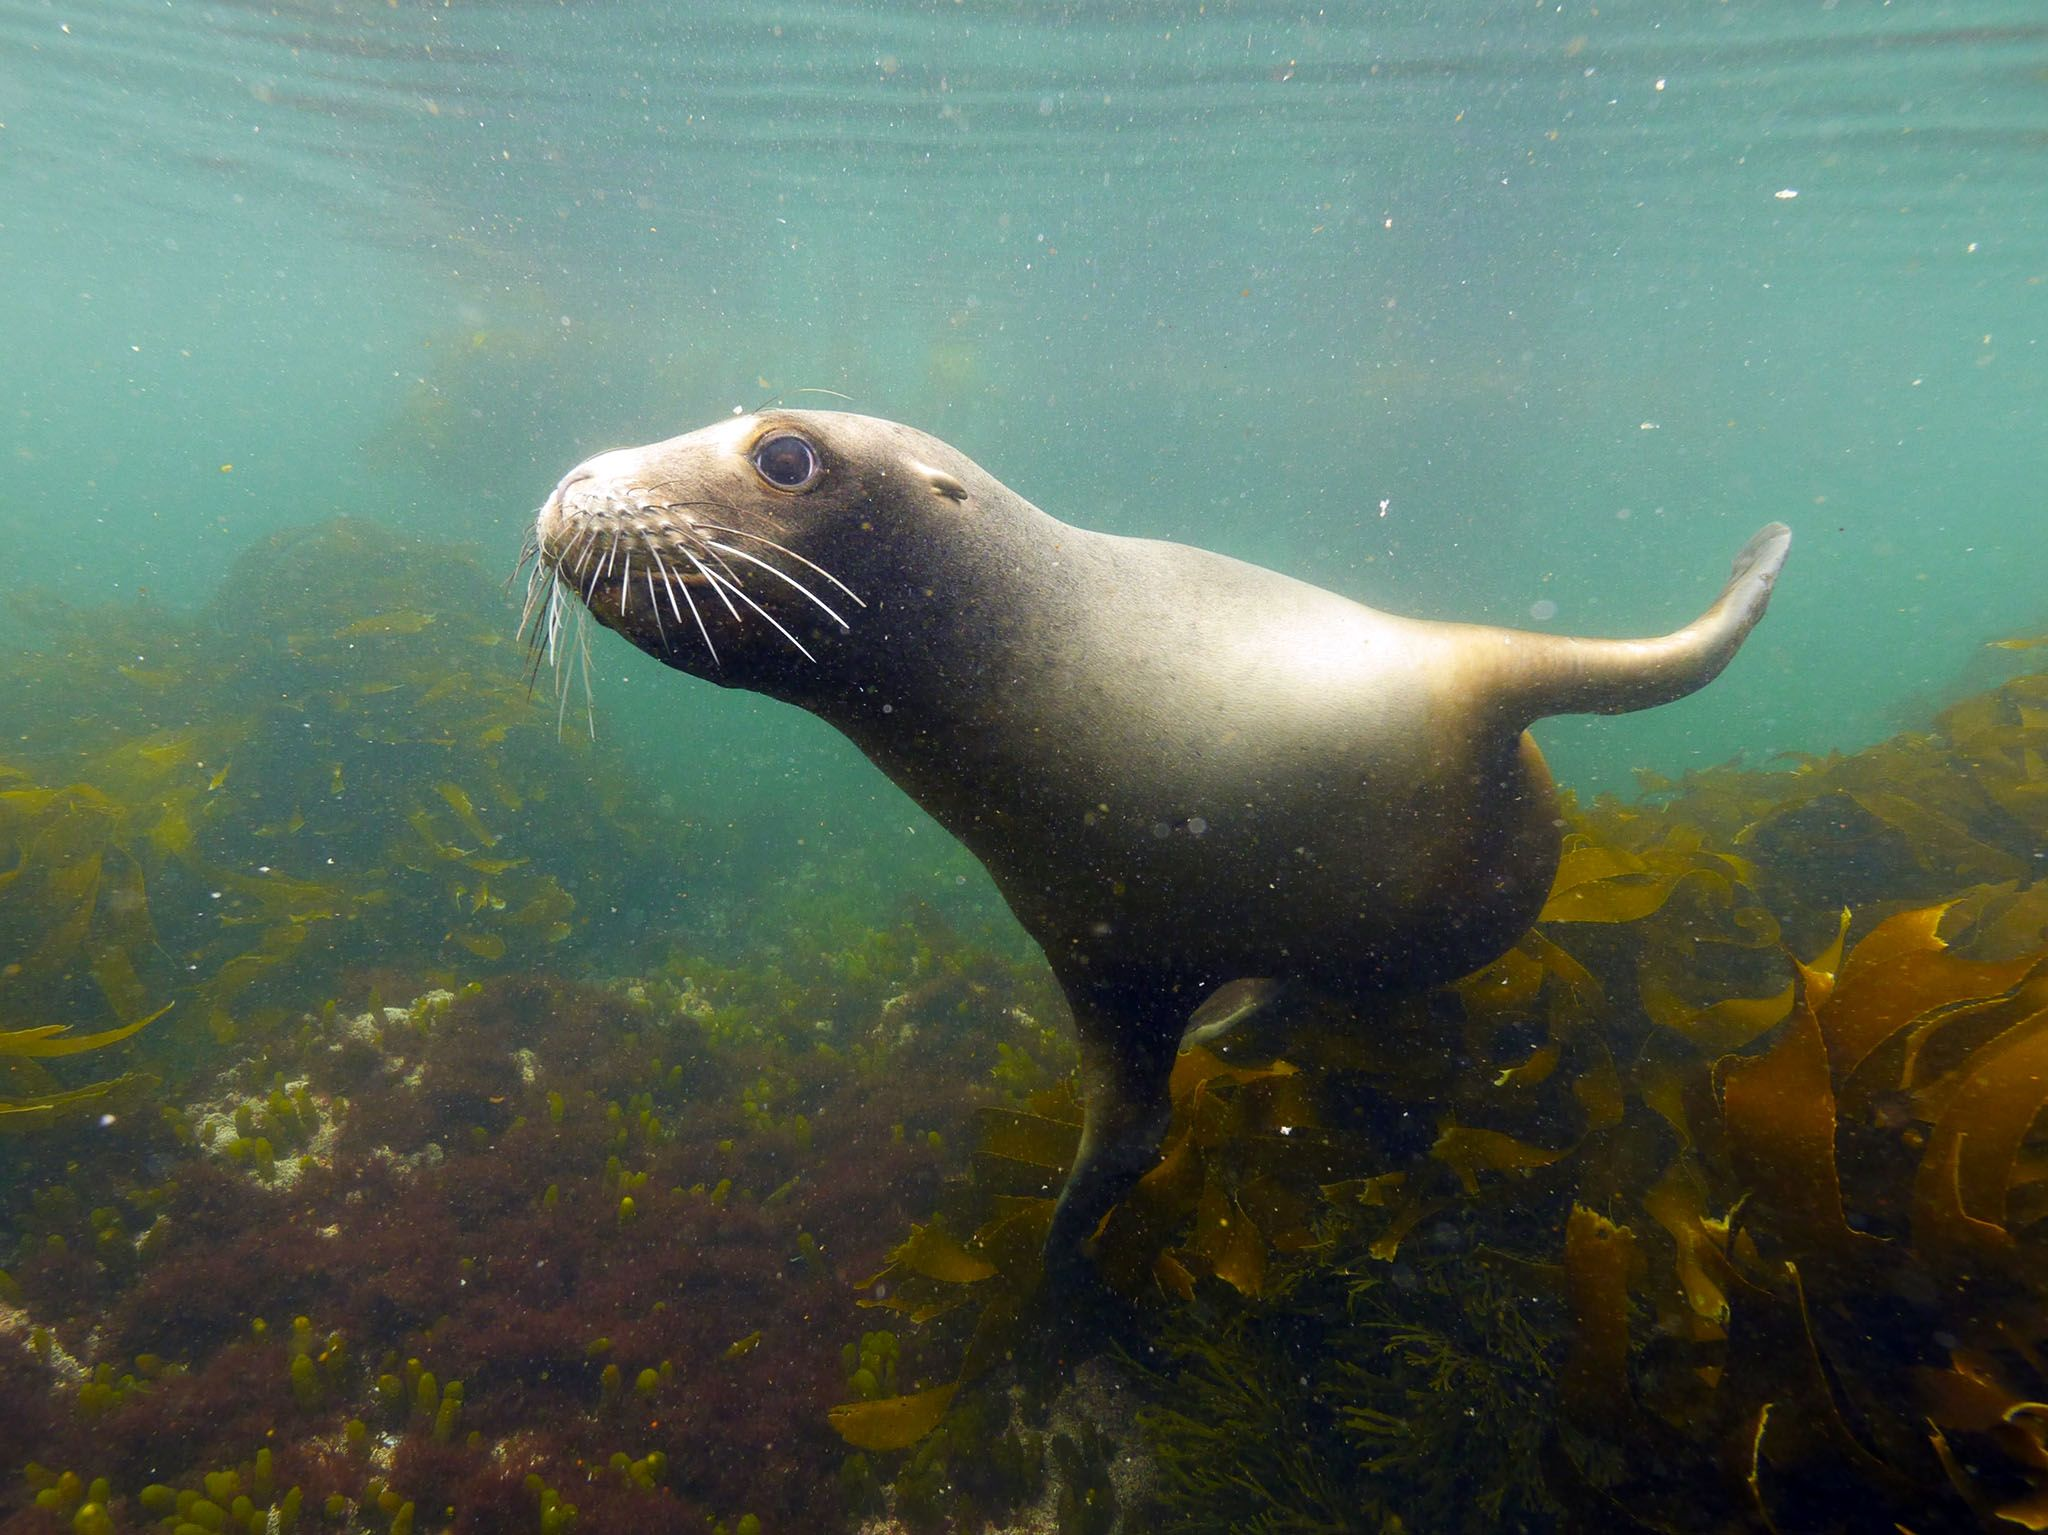 Auckland Islands, New Zealand: New Zealand sea lion. This image is from Savage Island Giants. [Photo of the day - July 2017]